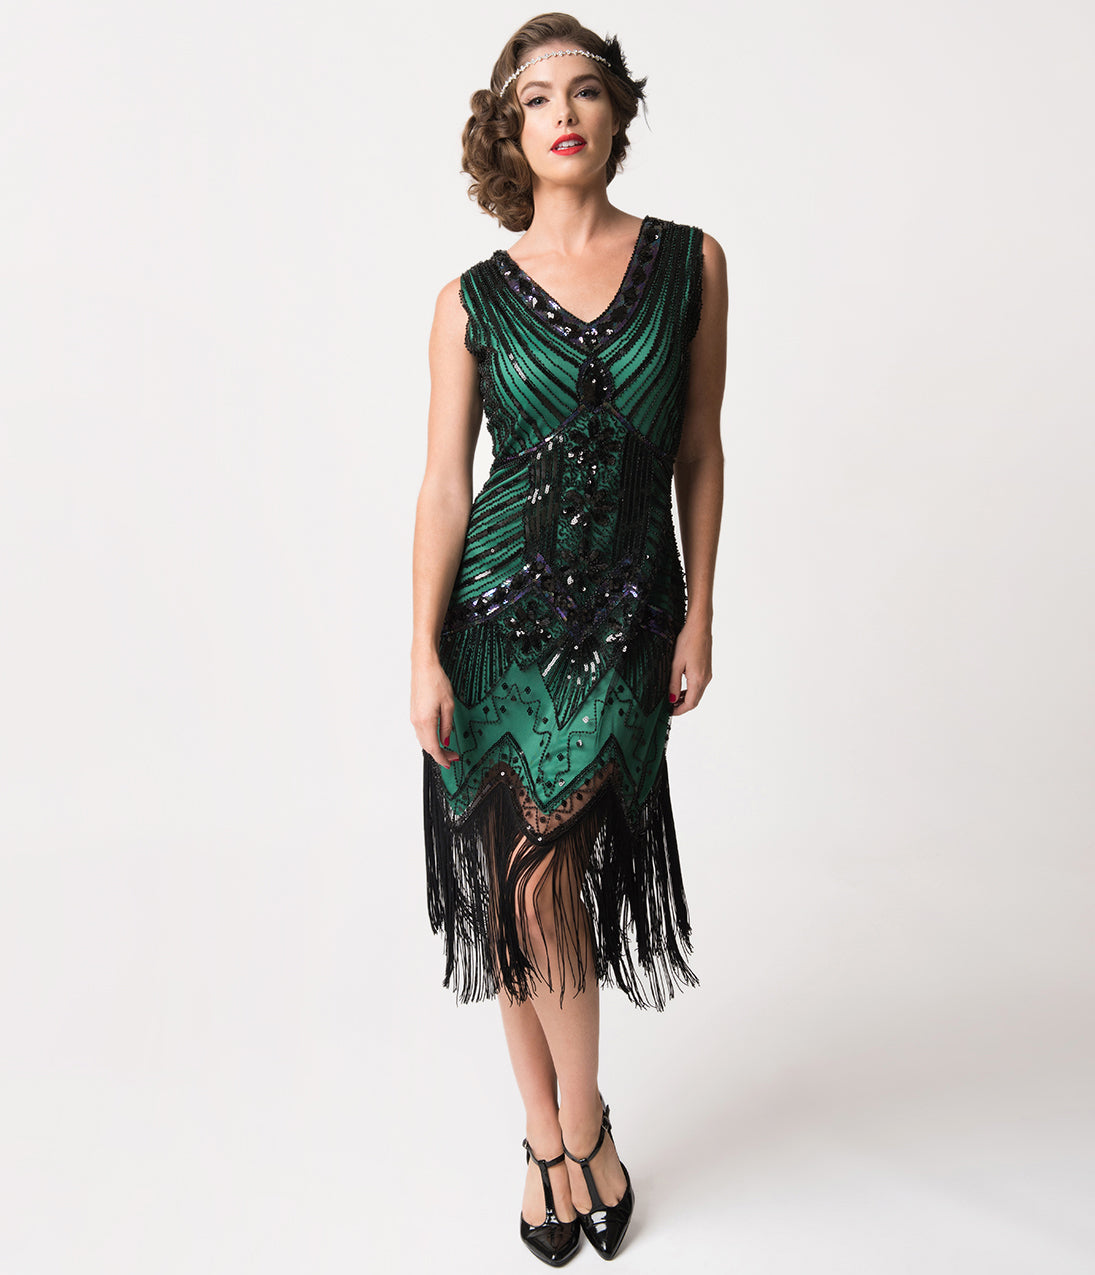 Downton Abbey Inspired Dresses Unique Vintage 1920S Deco Green  Black Sequin Veronique Fringe Flapper Dress $98.00 AT vintagedancer.com